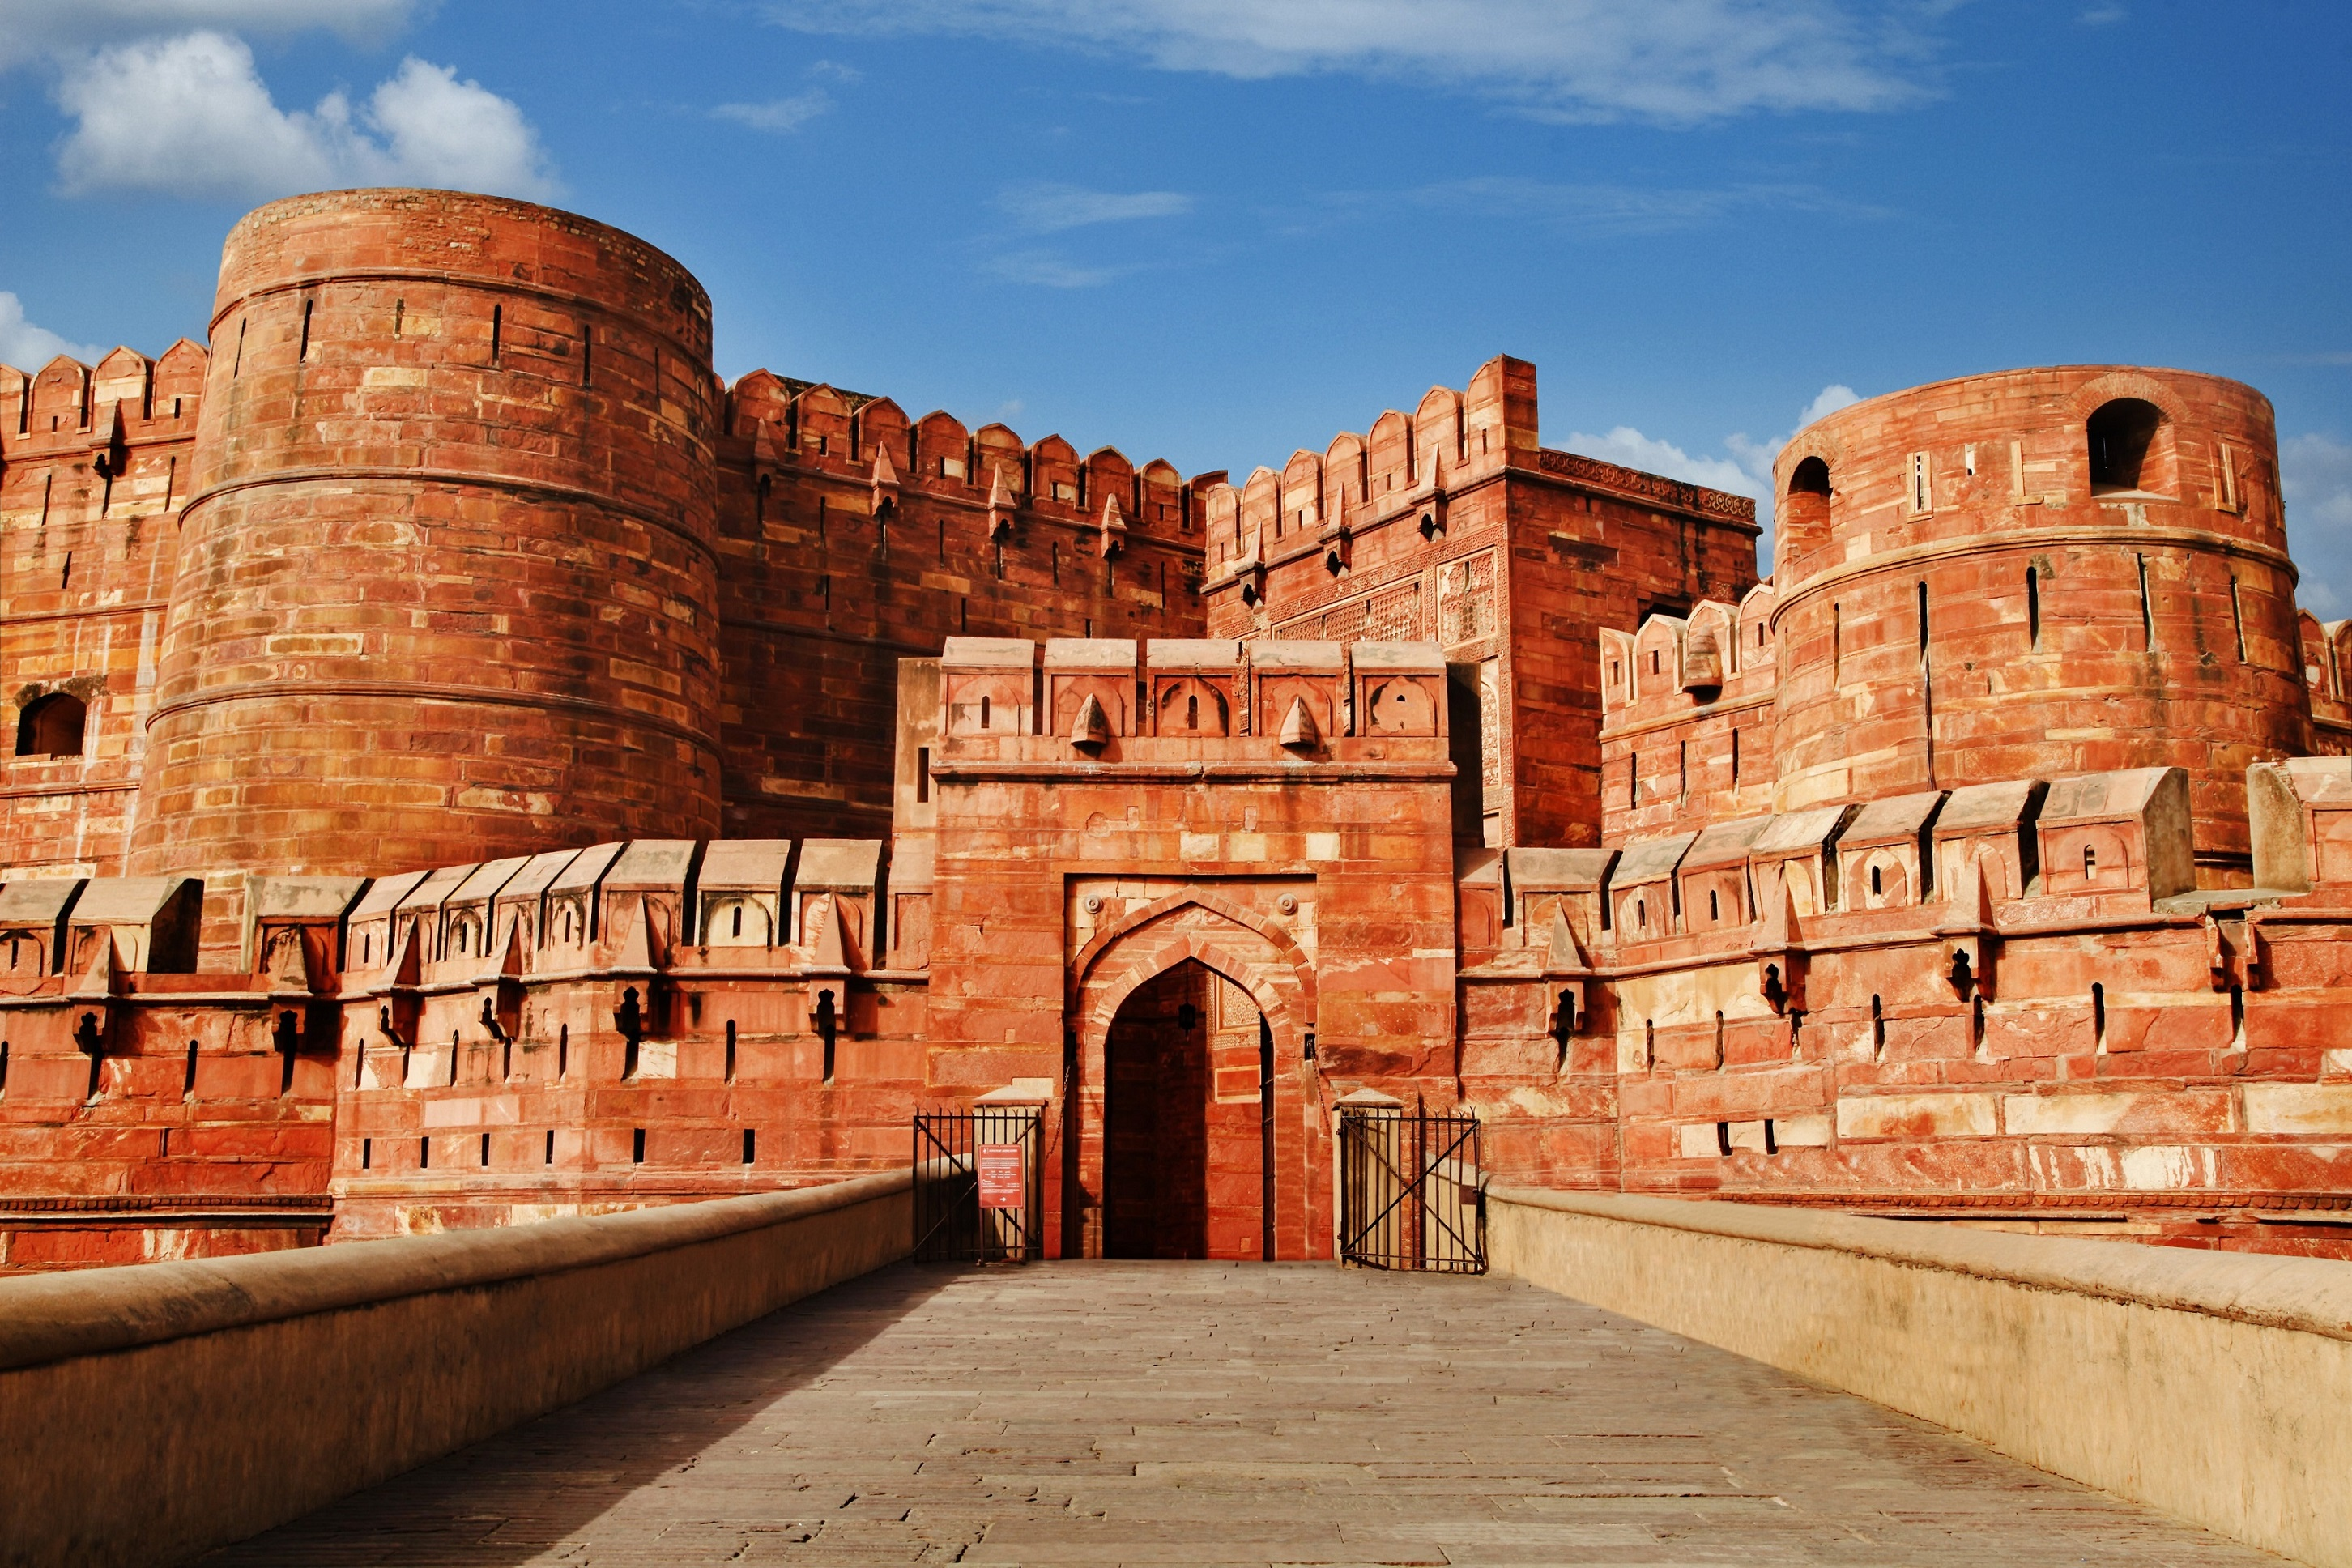 the-agra-fort-is-one-of-indias-most-impressive-and-impor-secret-world